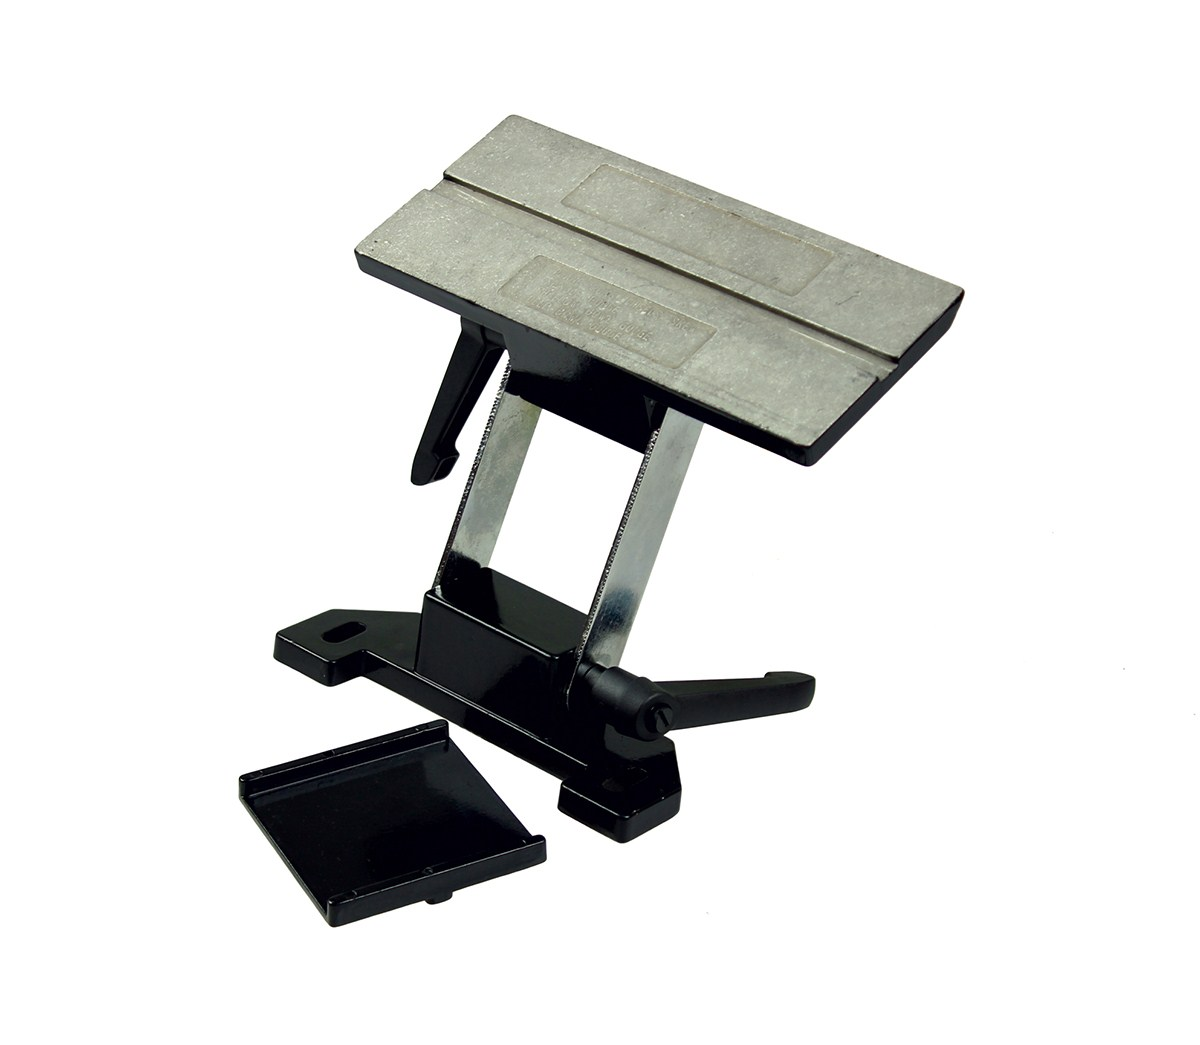 Superb Bench Grinder Toolrest New Design W Flat Grind Jig Caraccident5 Cool Chair Designs And Ideas Caraccident5Info